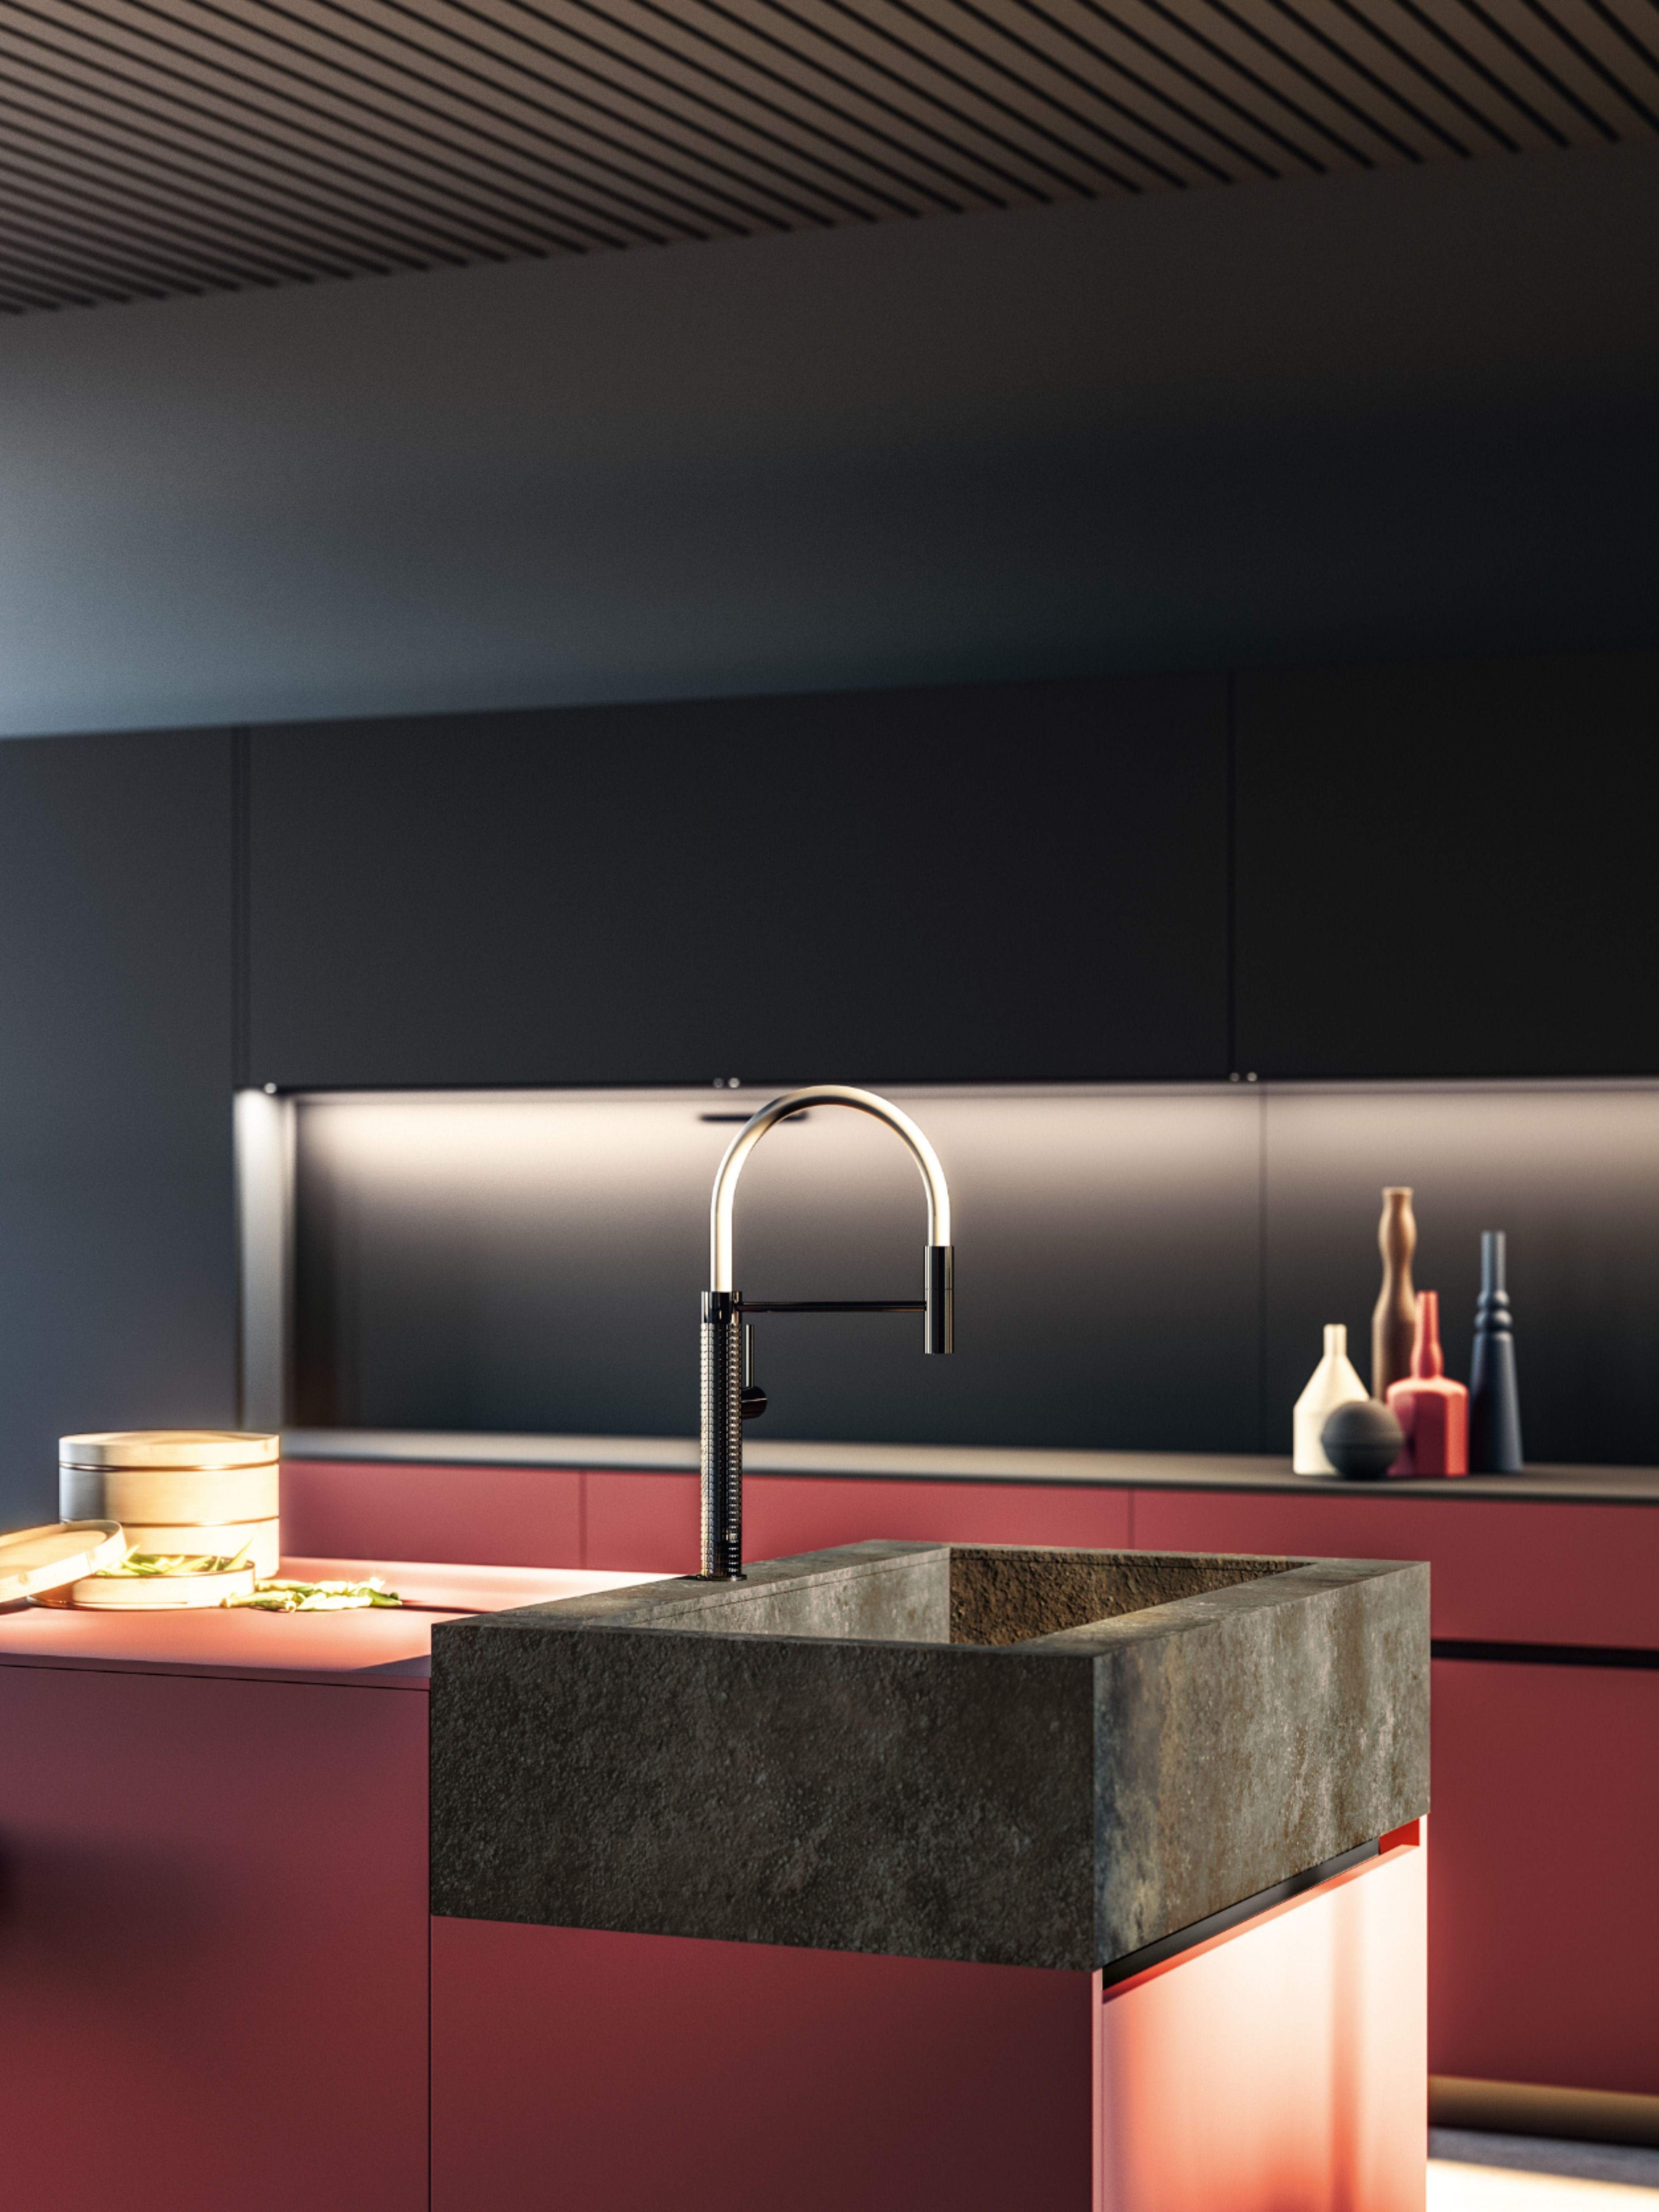 Kitchens made in Italy  #armonycucine #architecture #archilovers #moderninterior #cuisine #kitchen #design #madeinitaly #designdetails